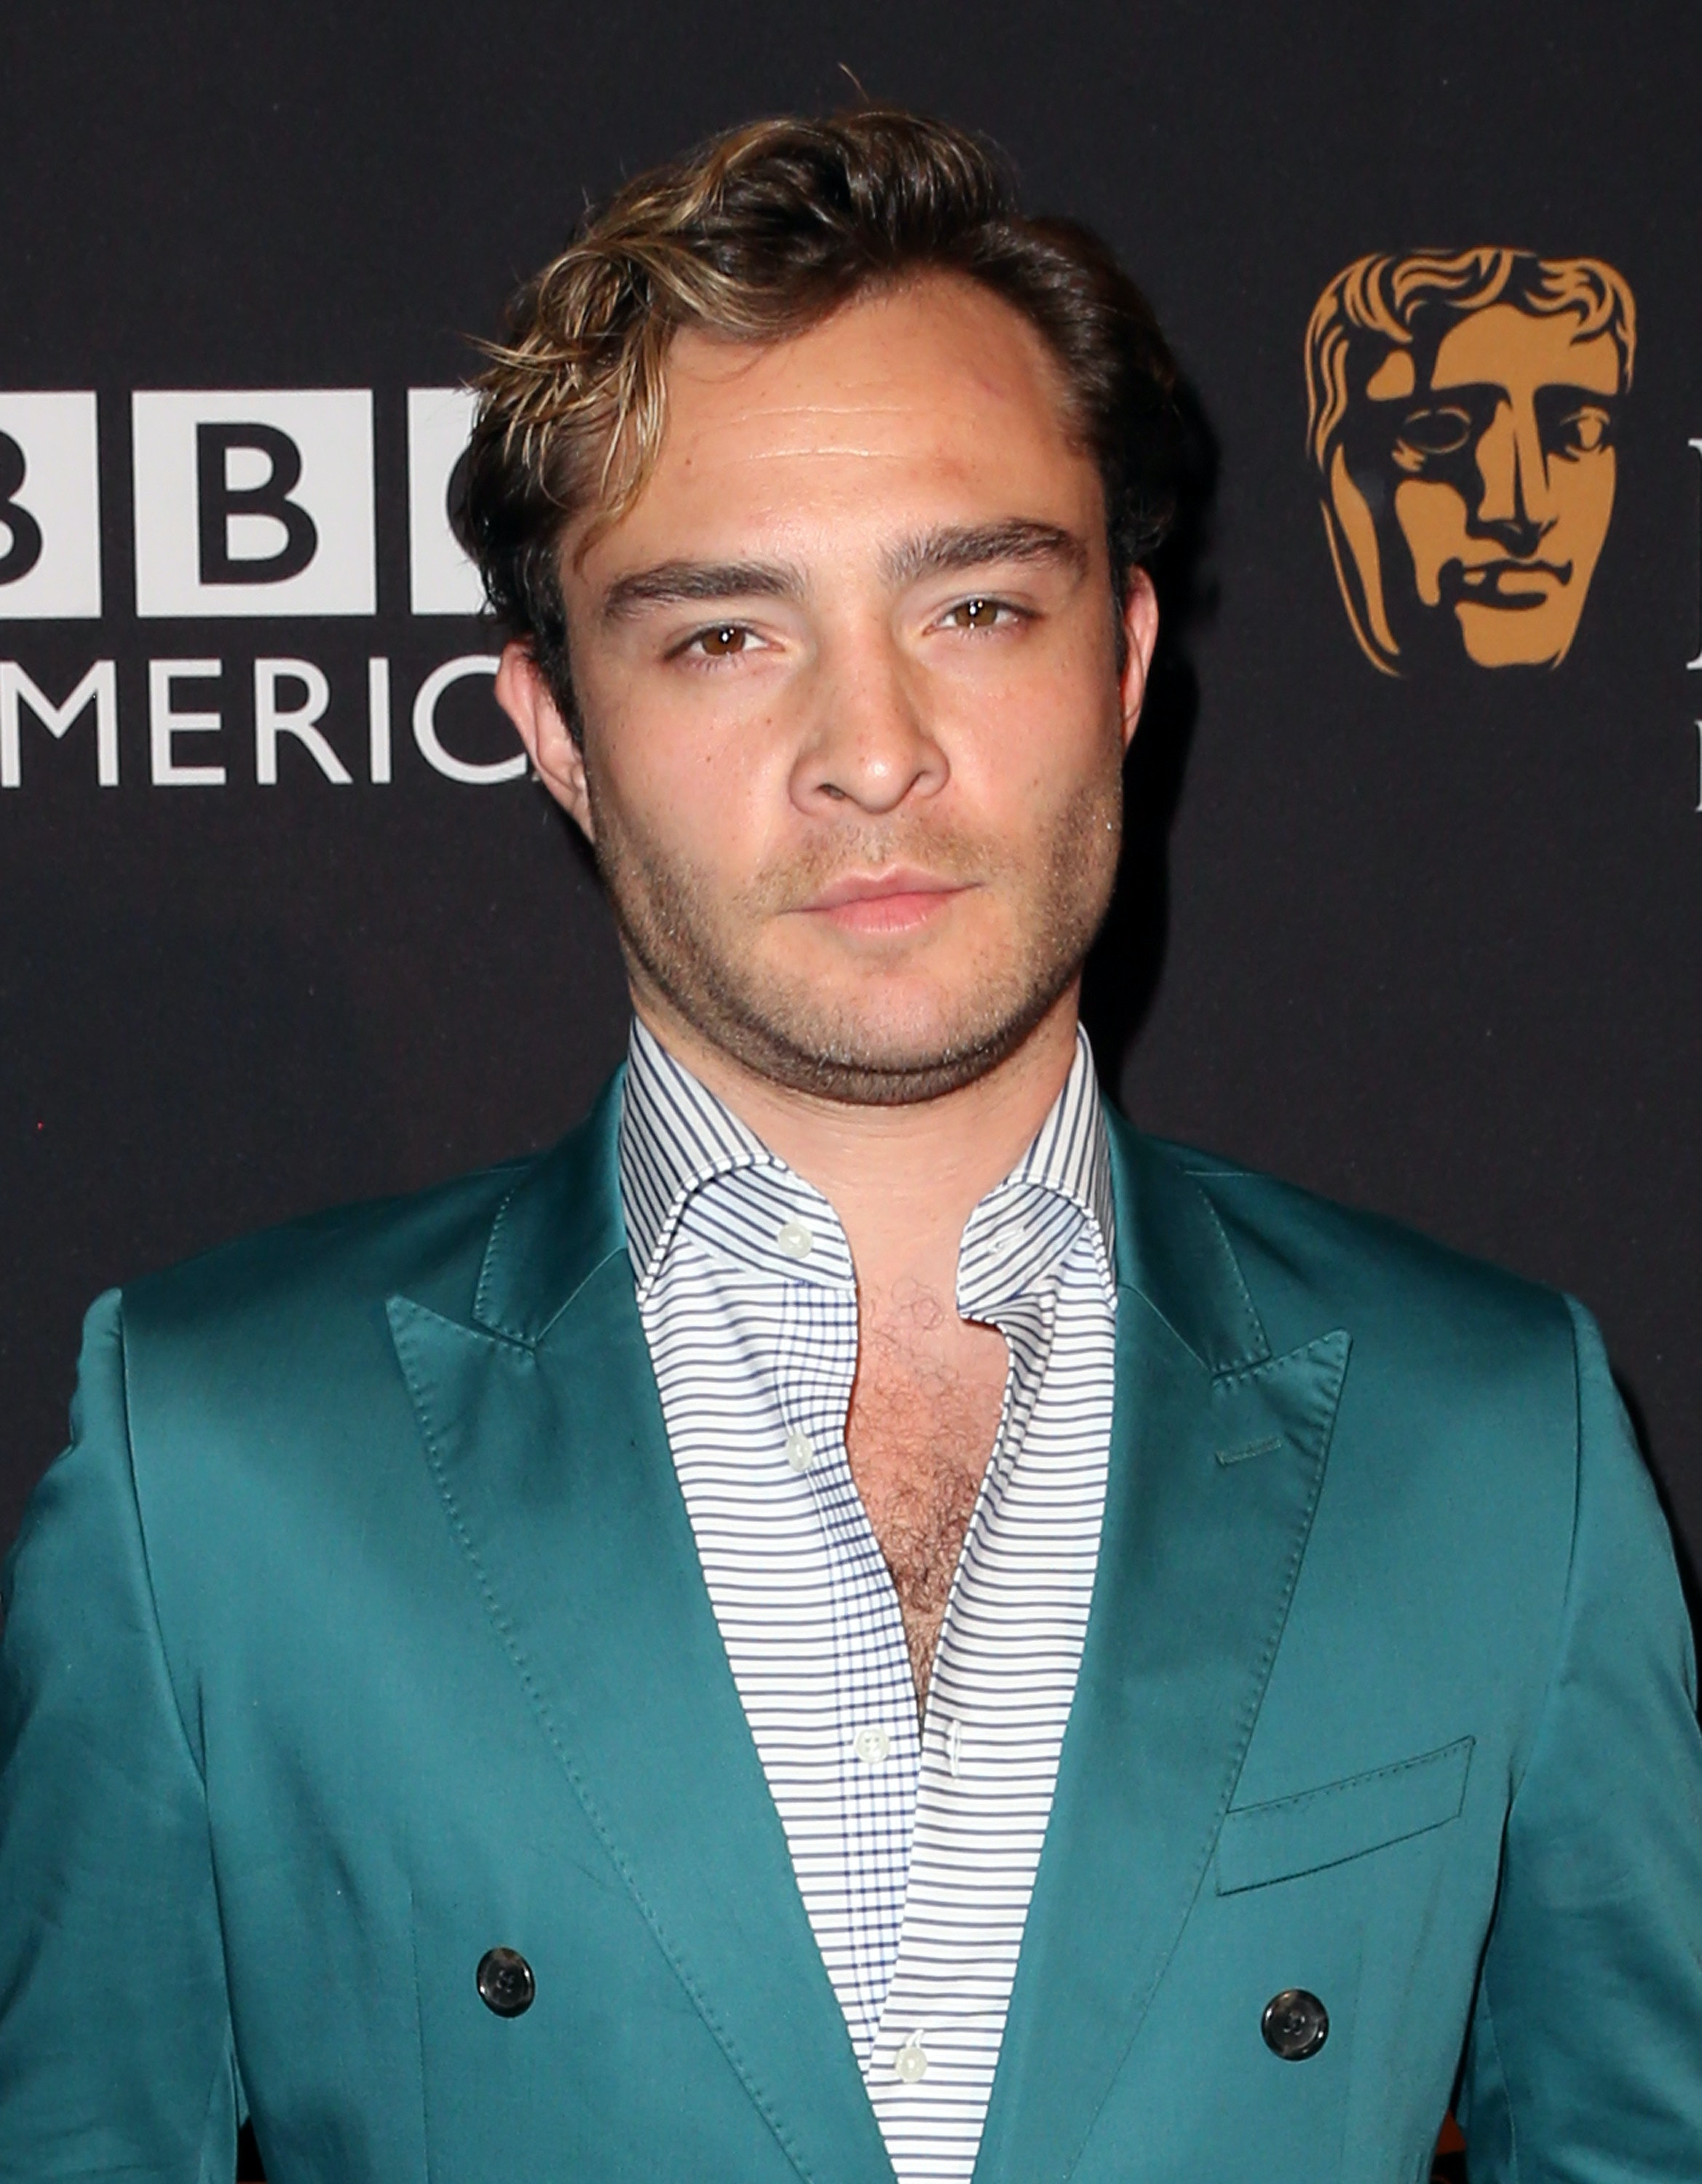 Gossip Girl actor Ed Westwick denies raping a woman